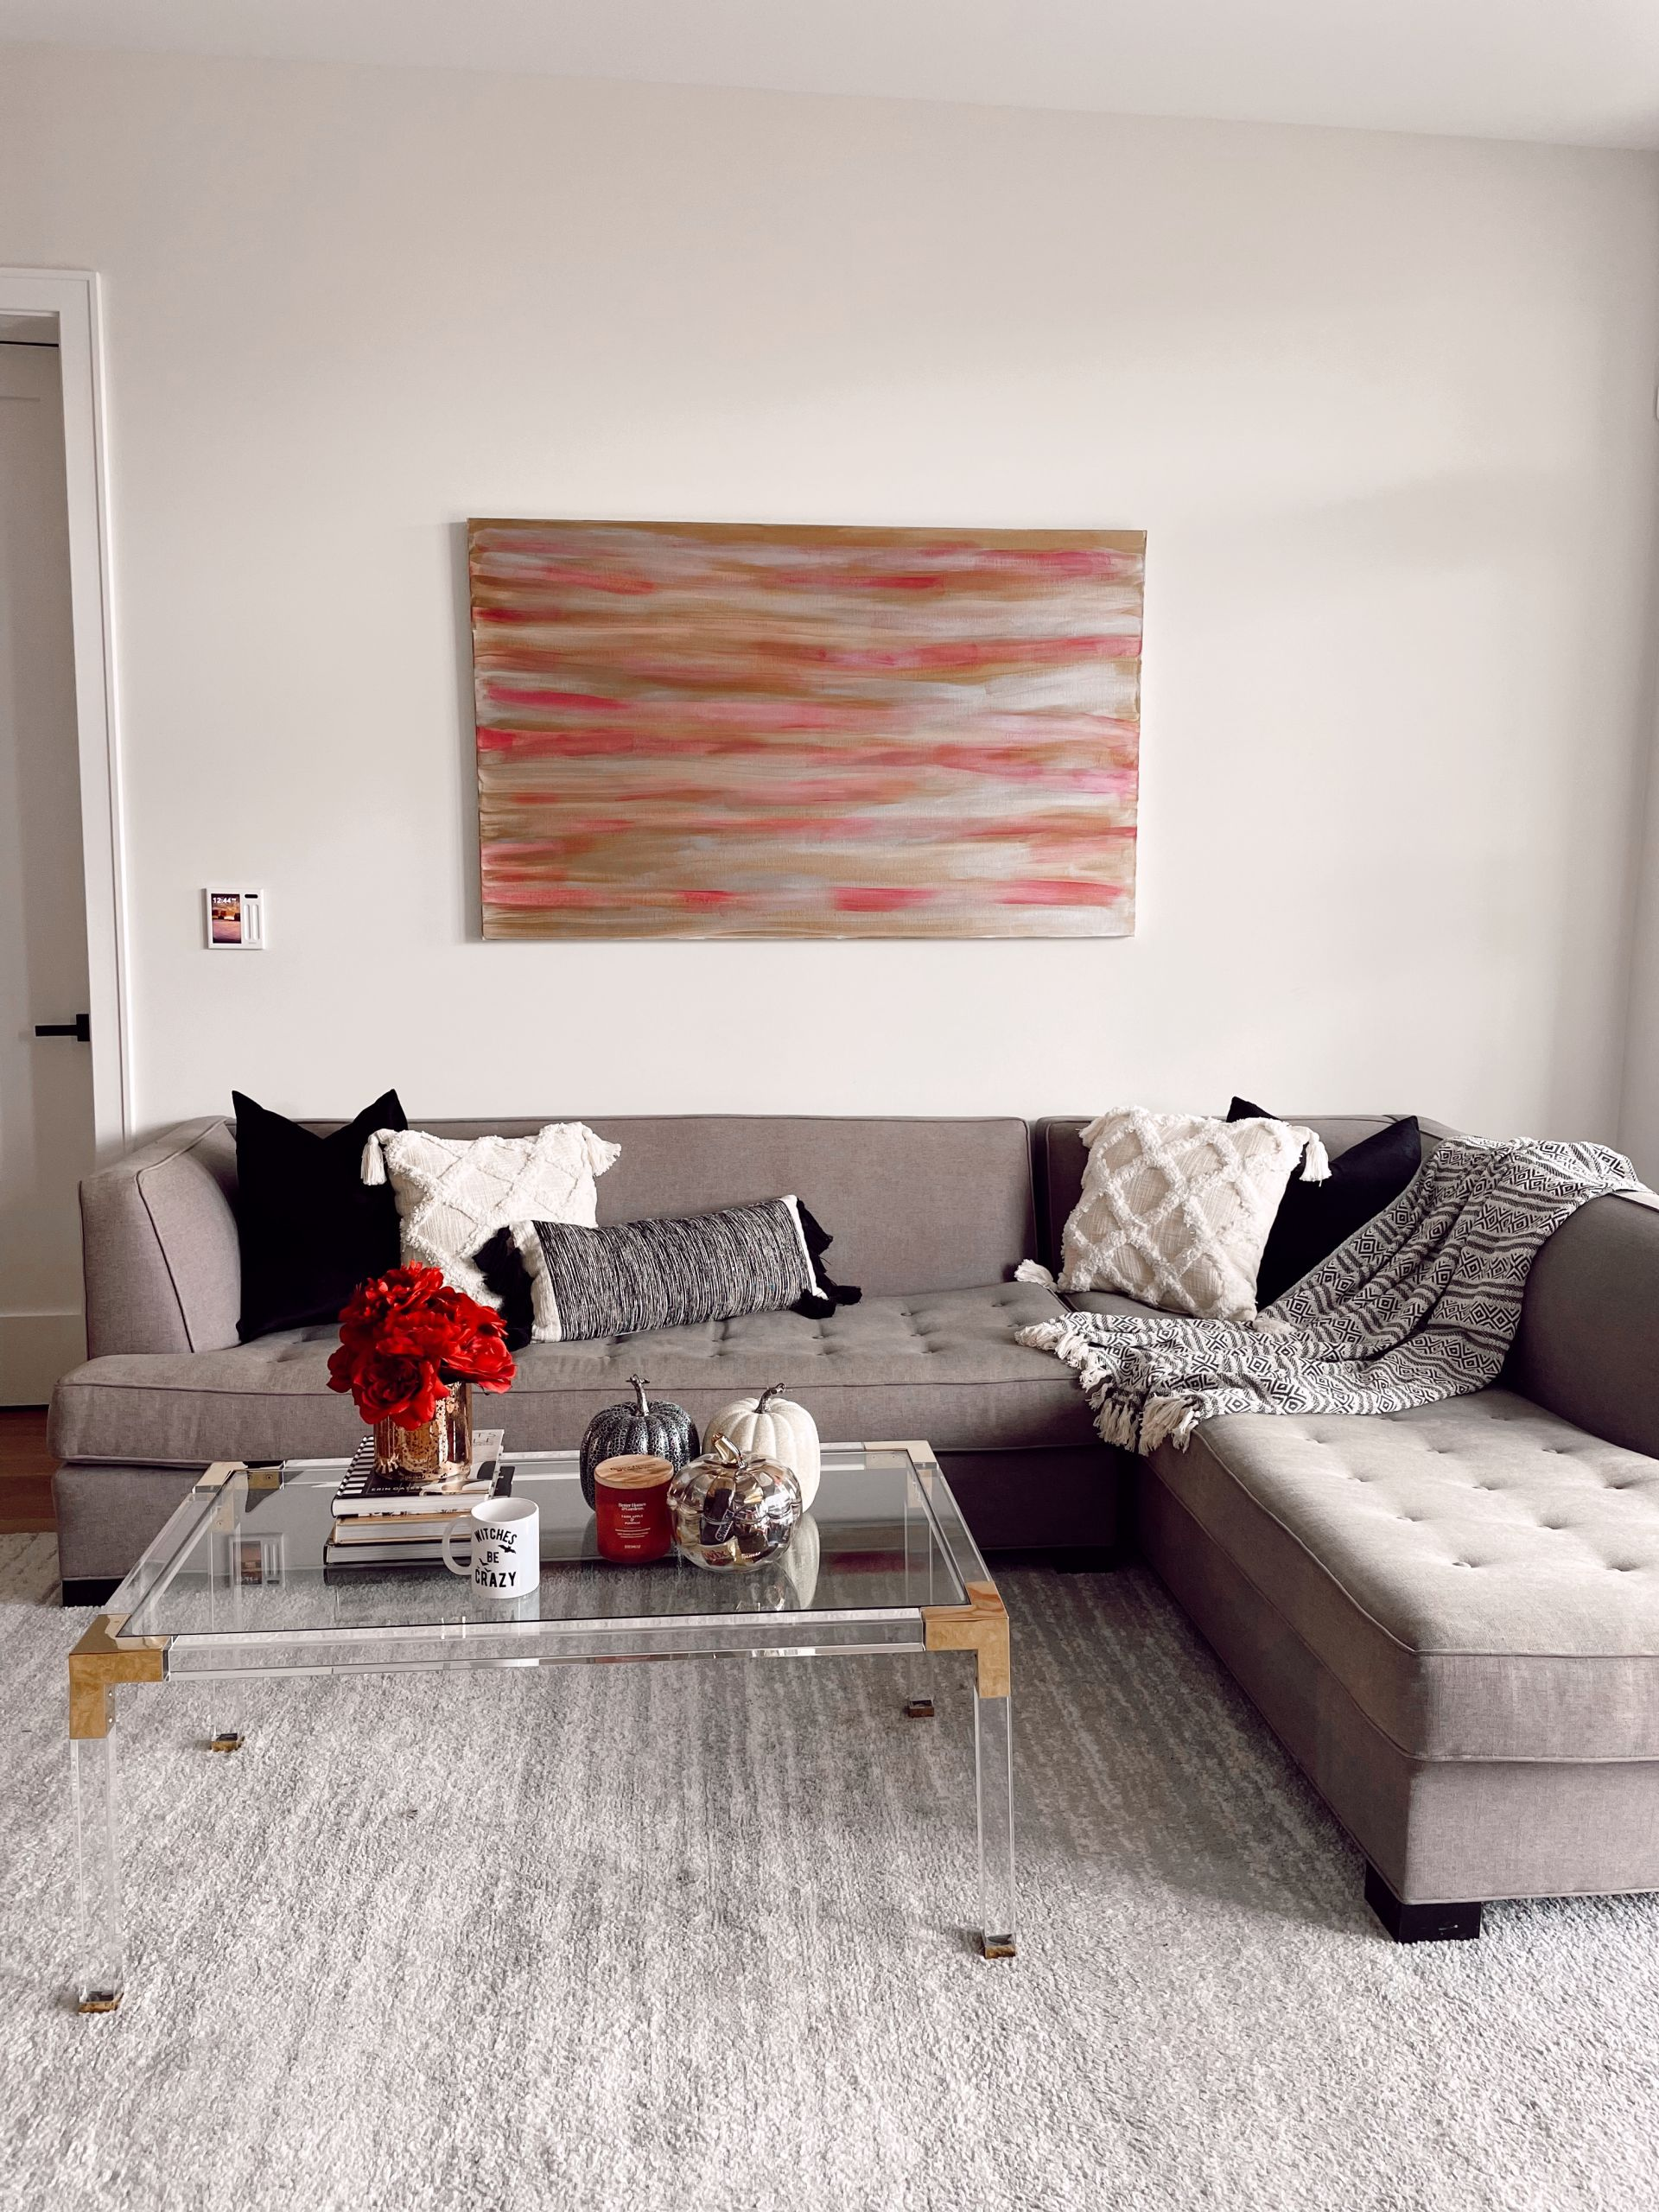 cozy fall living room, cozy neutral living room, fall home decor, subtle Subtle Touches of Fall to your Home, home decor inspiration, fall home inspiration, black and white fall decor, glam fall decor, neutralfall decor, pretty pumpkindecor, fall decor ideas, pretty fall decor, Red Soles and Red Wine, Jennifer Worman